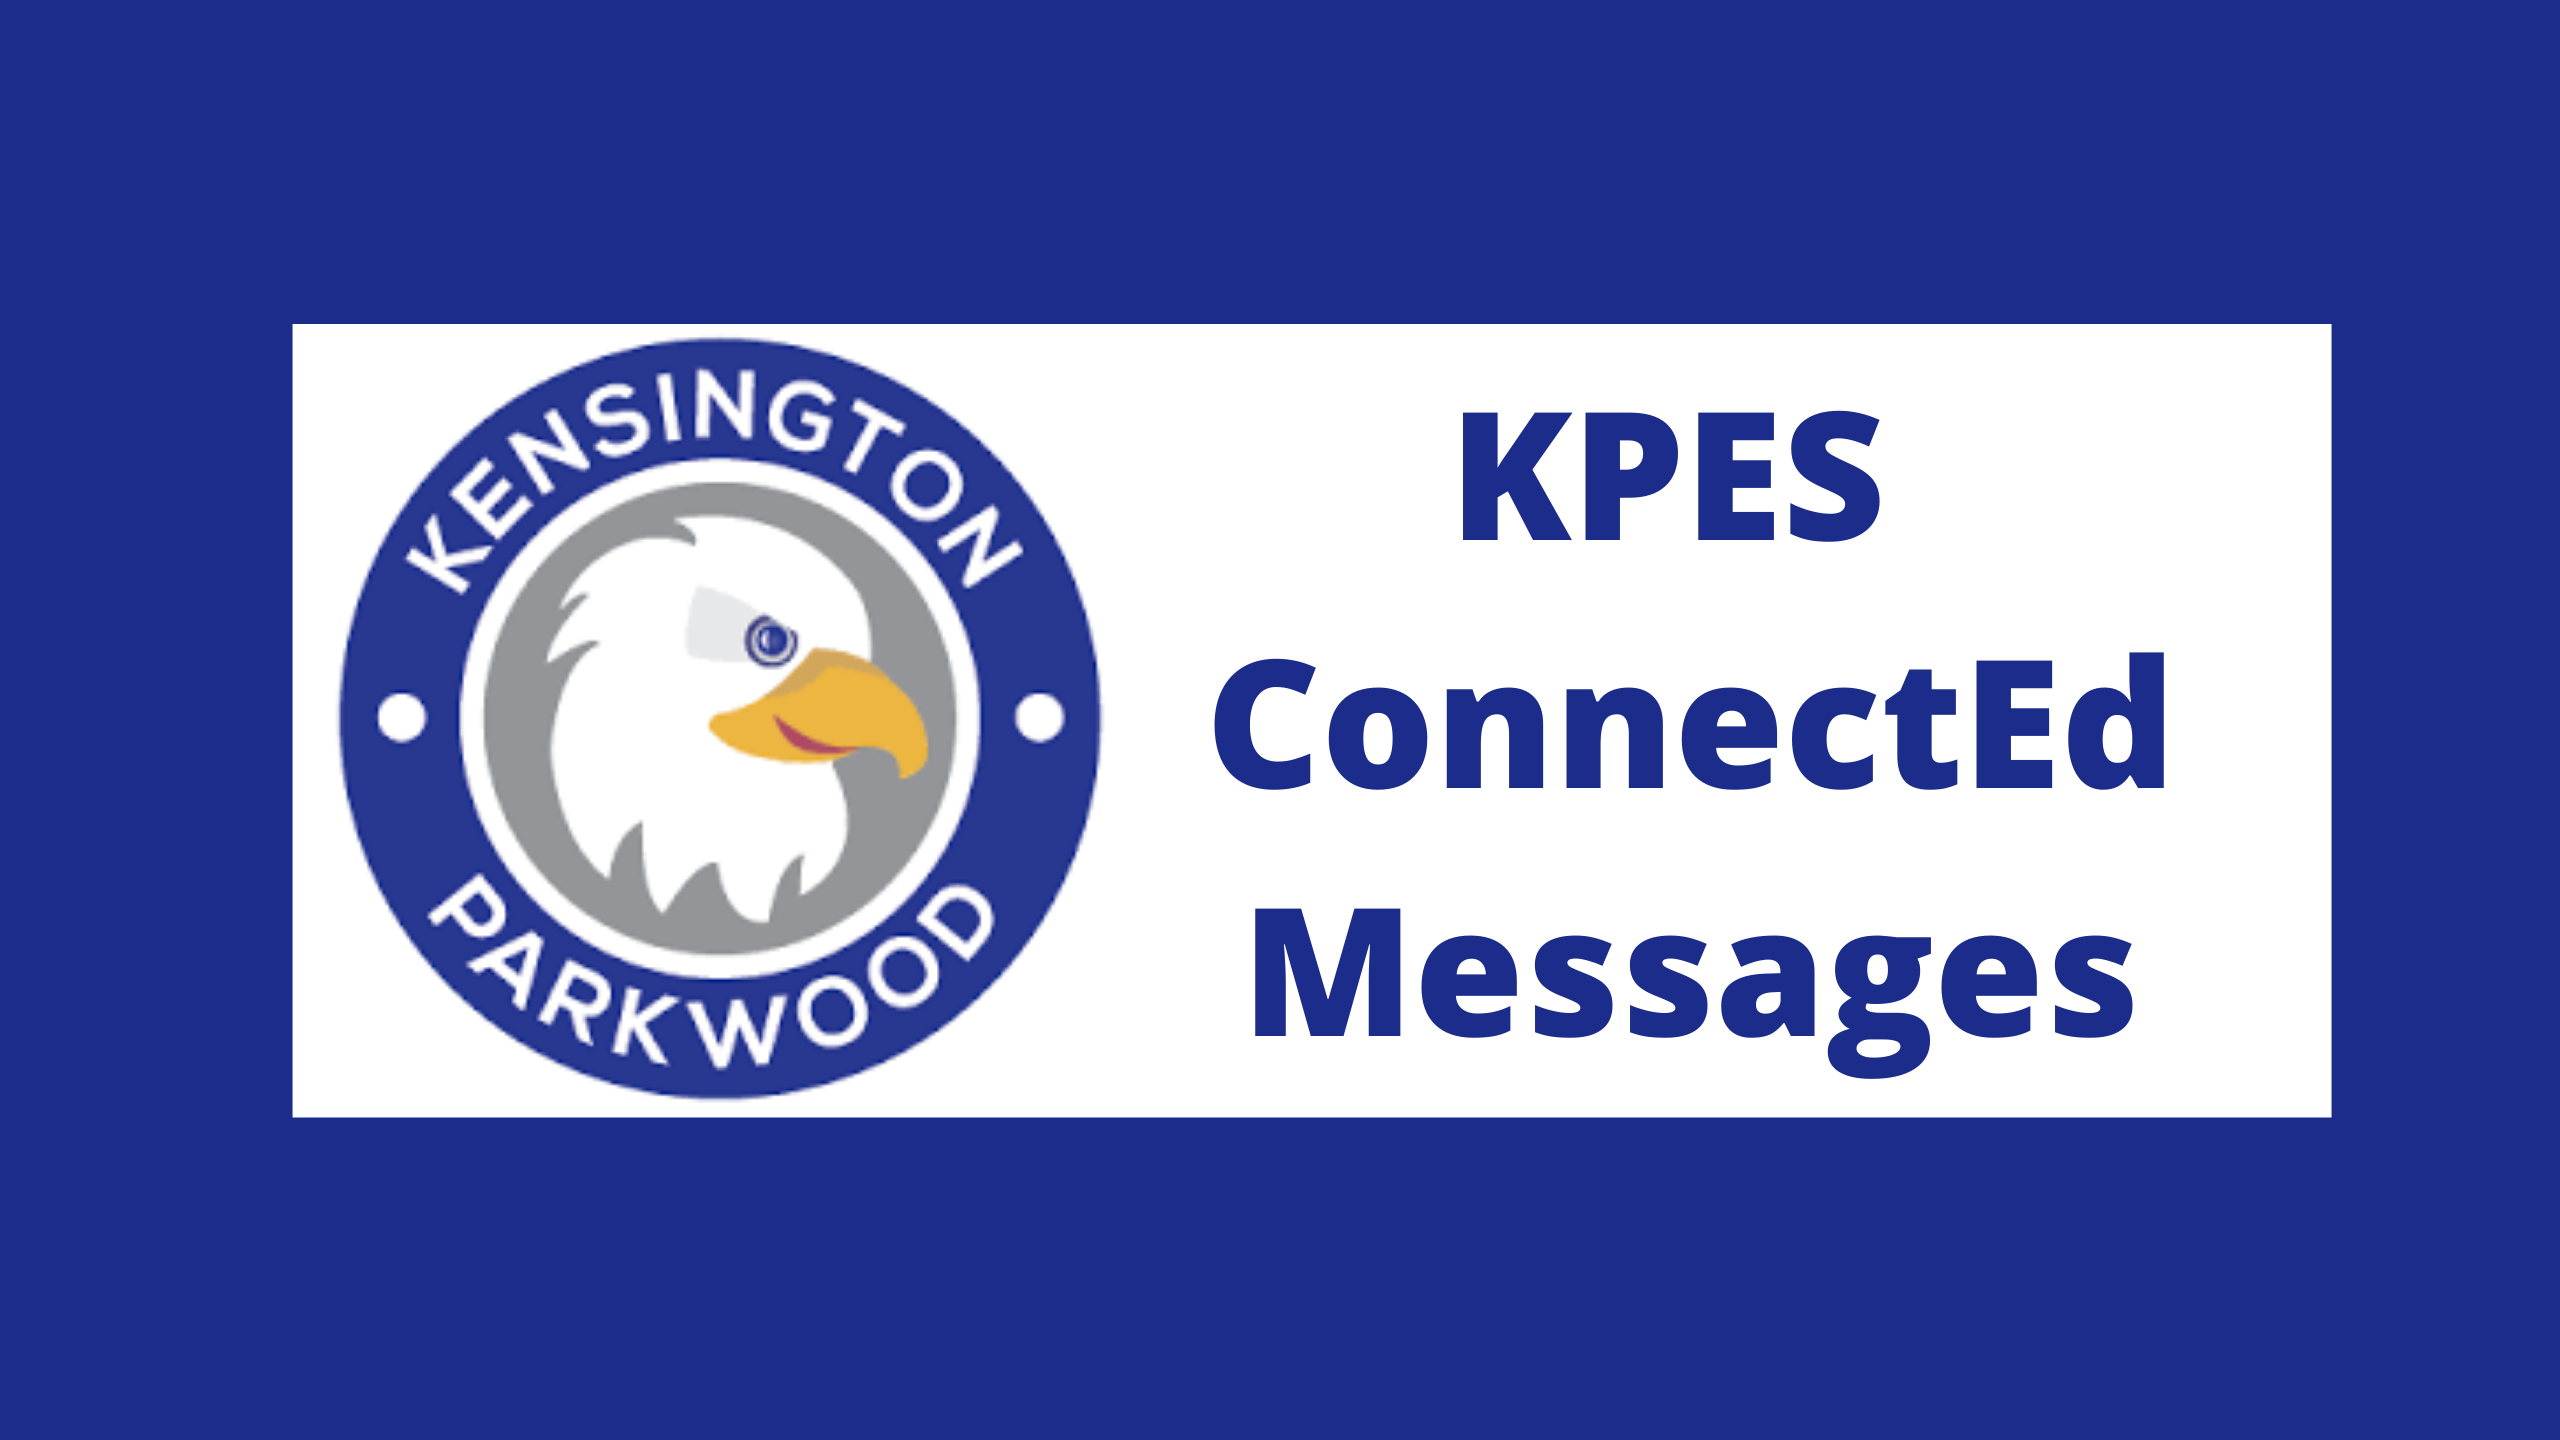 KPES ConnectEd Messages.png